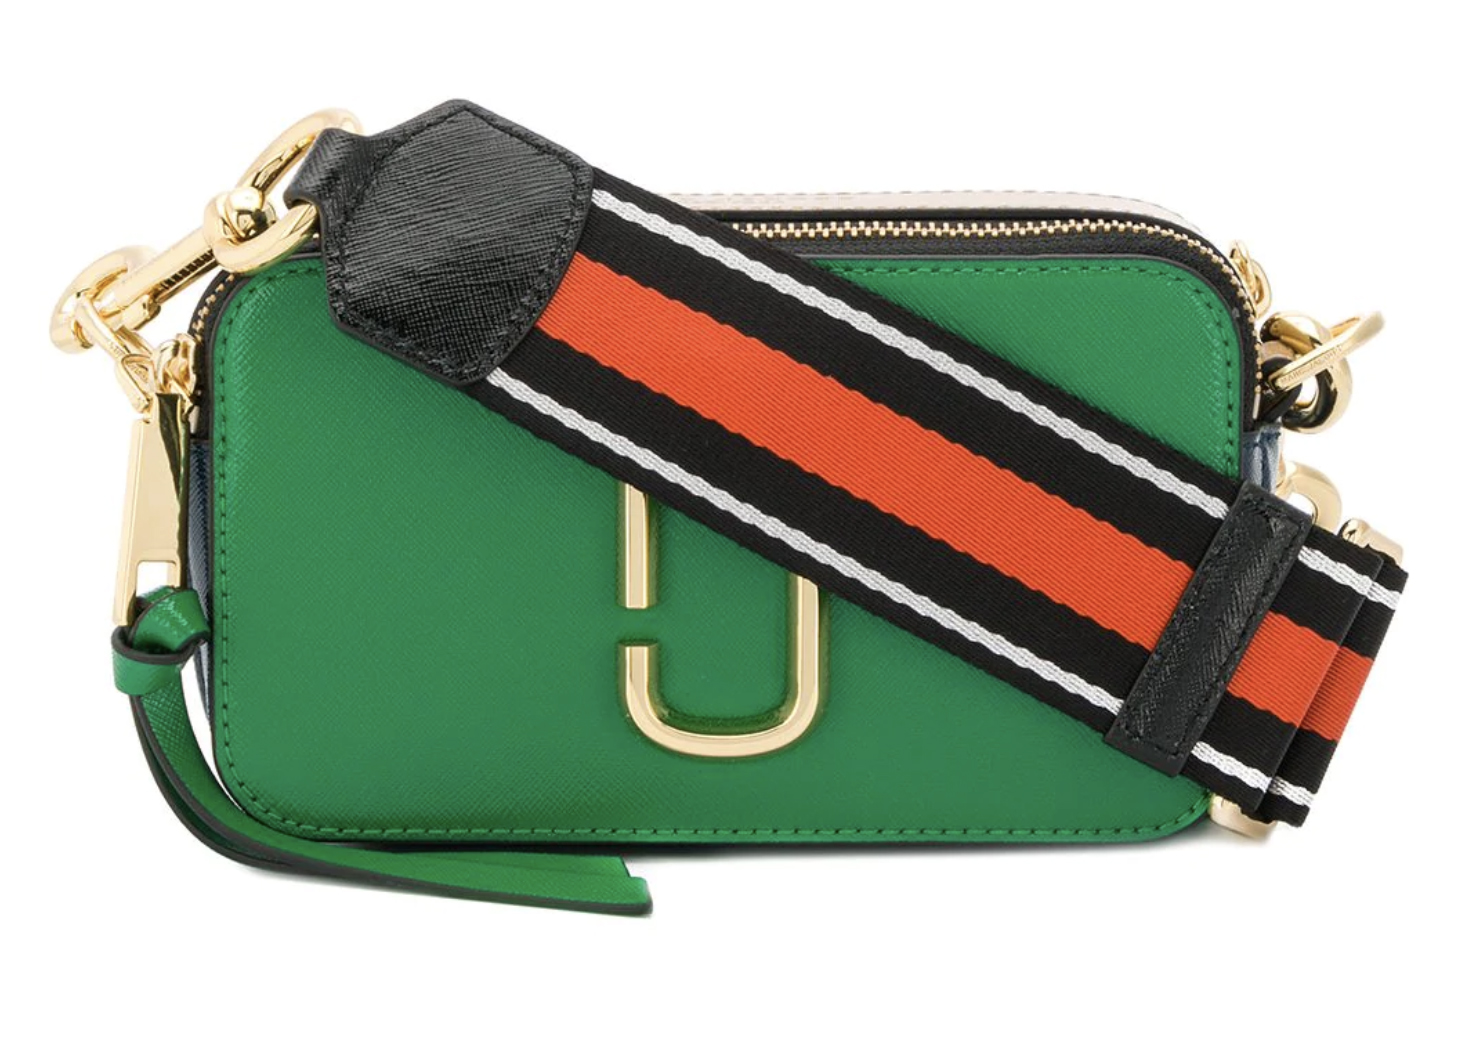 The Marc Jacobs The Snapshot Pepper Green Multi in Saffiano ...